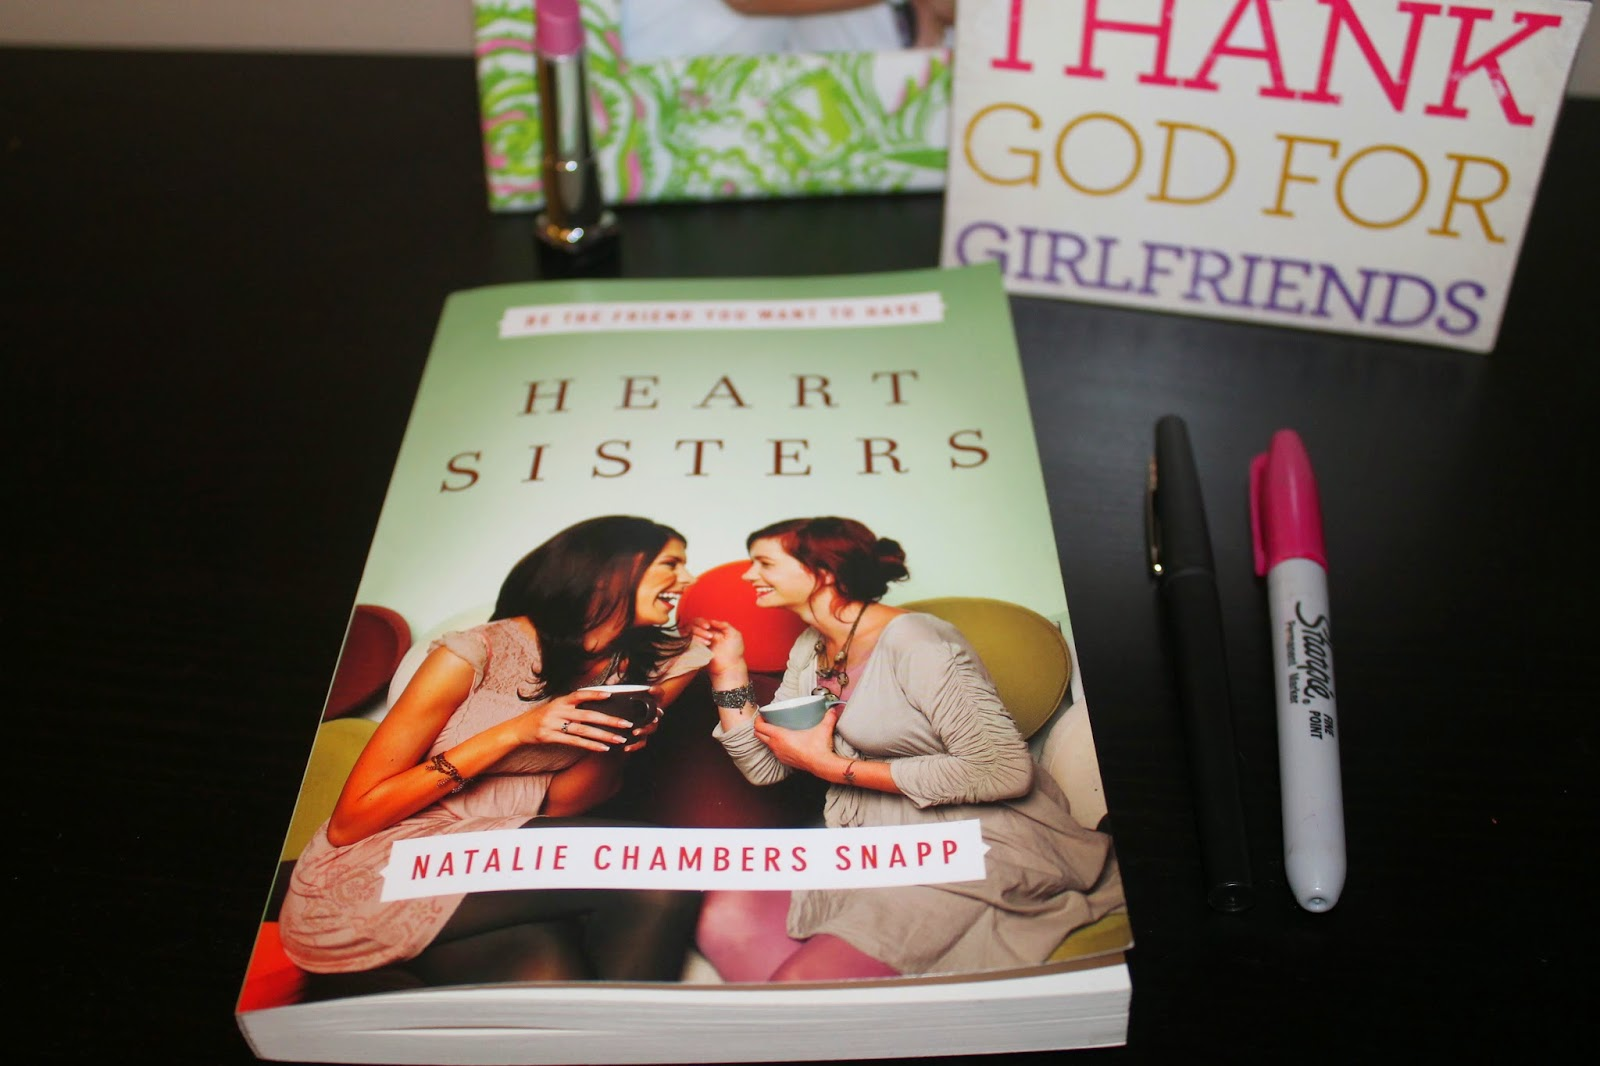 Wednesday Wisdom | Becoming a Better Friend with 'Heart Sisters' + a Giveaway!